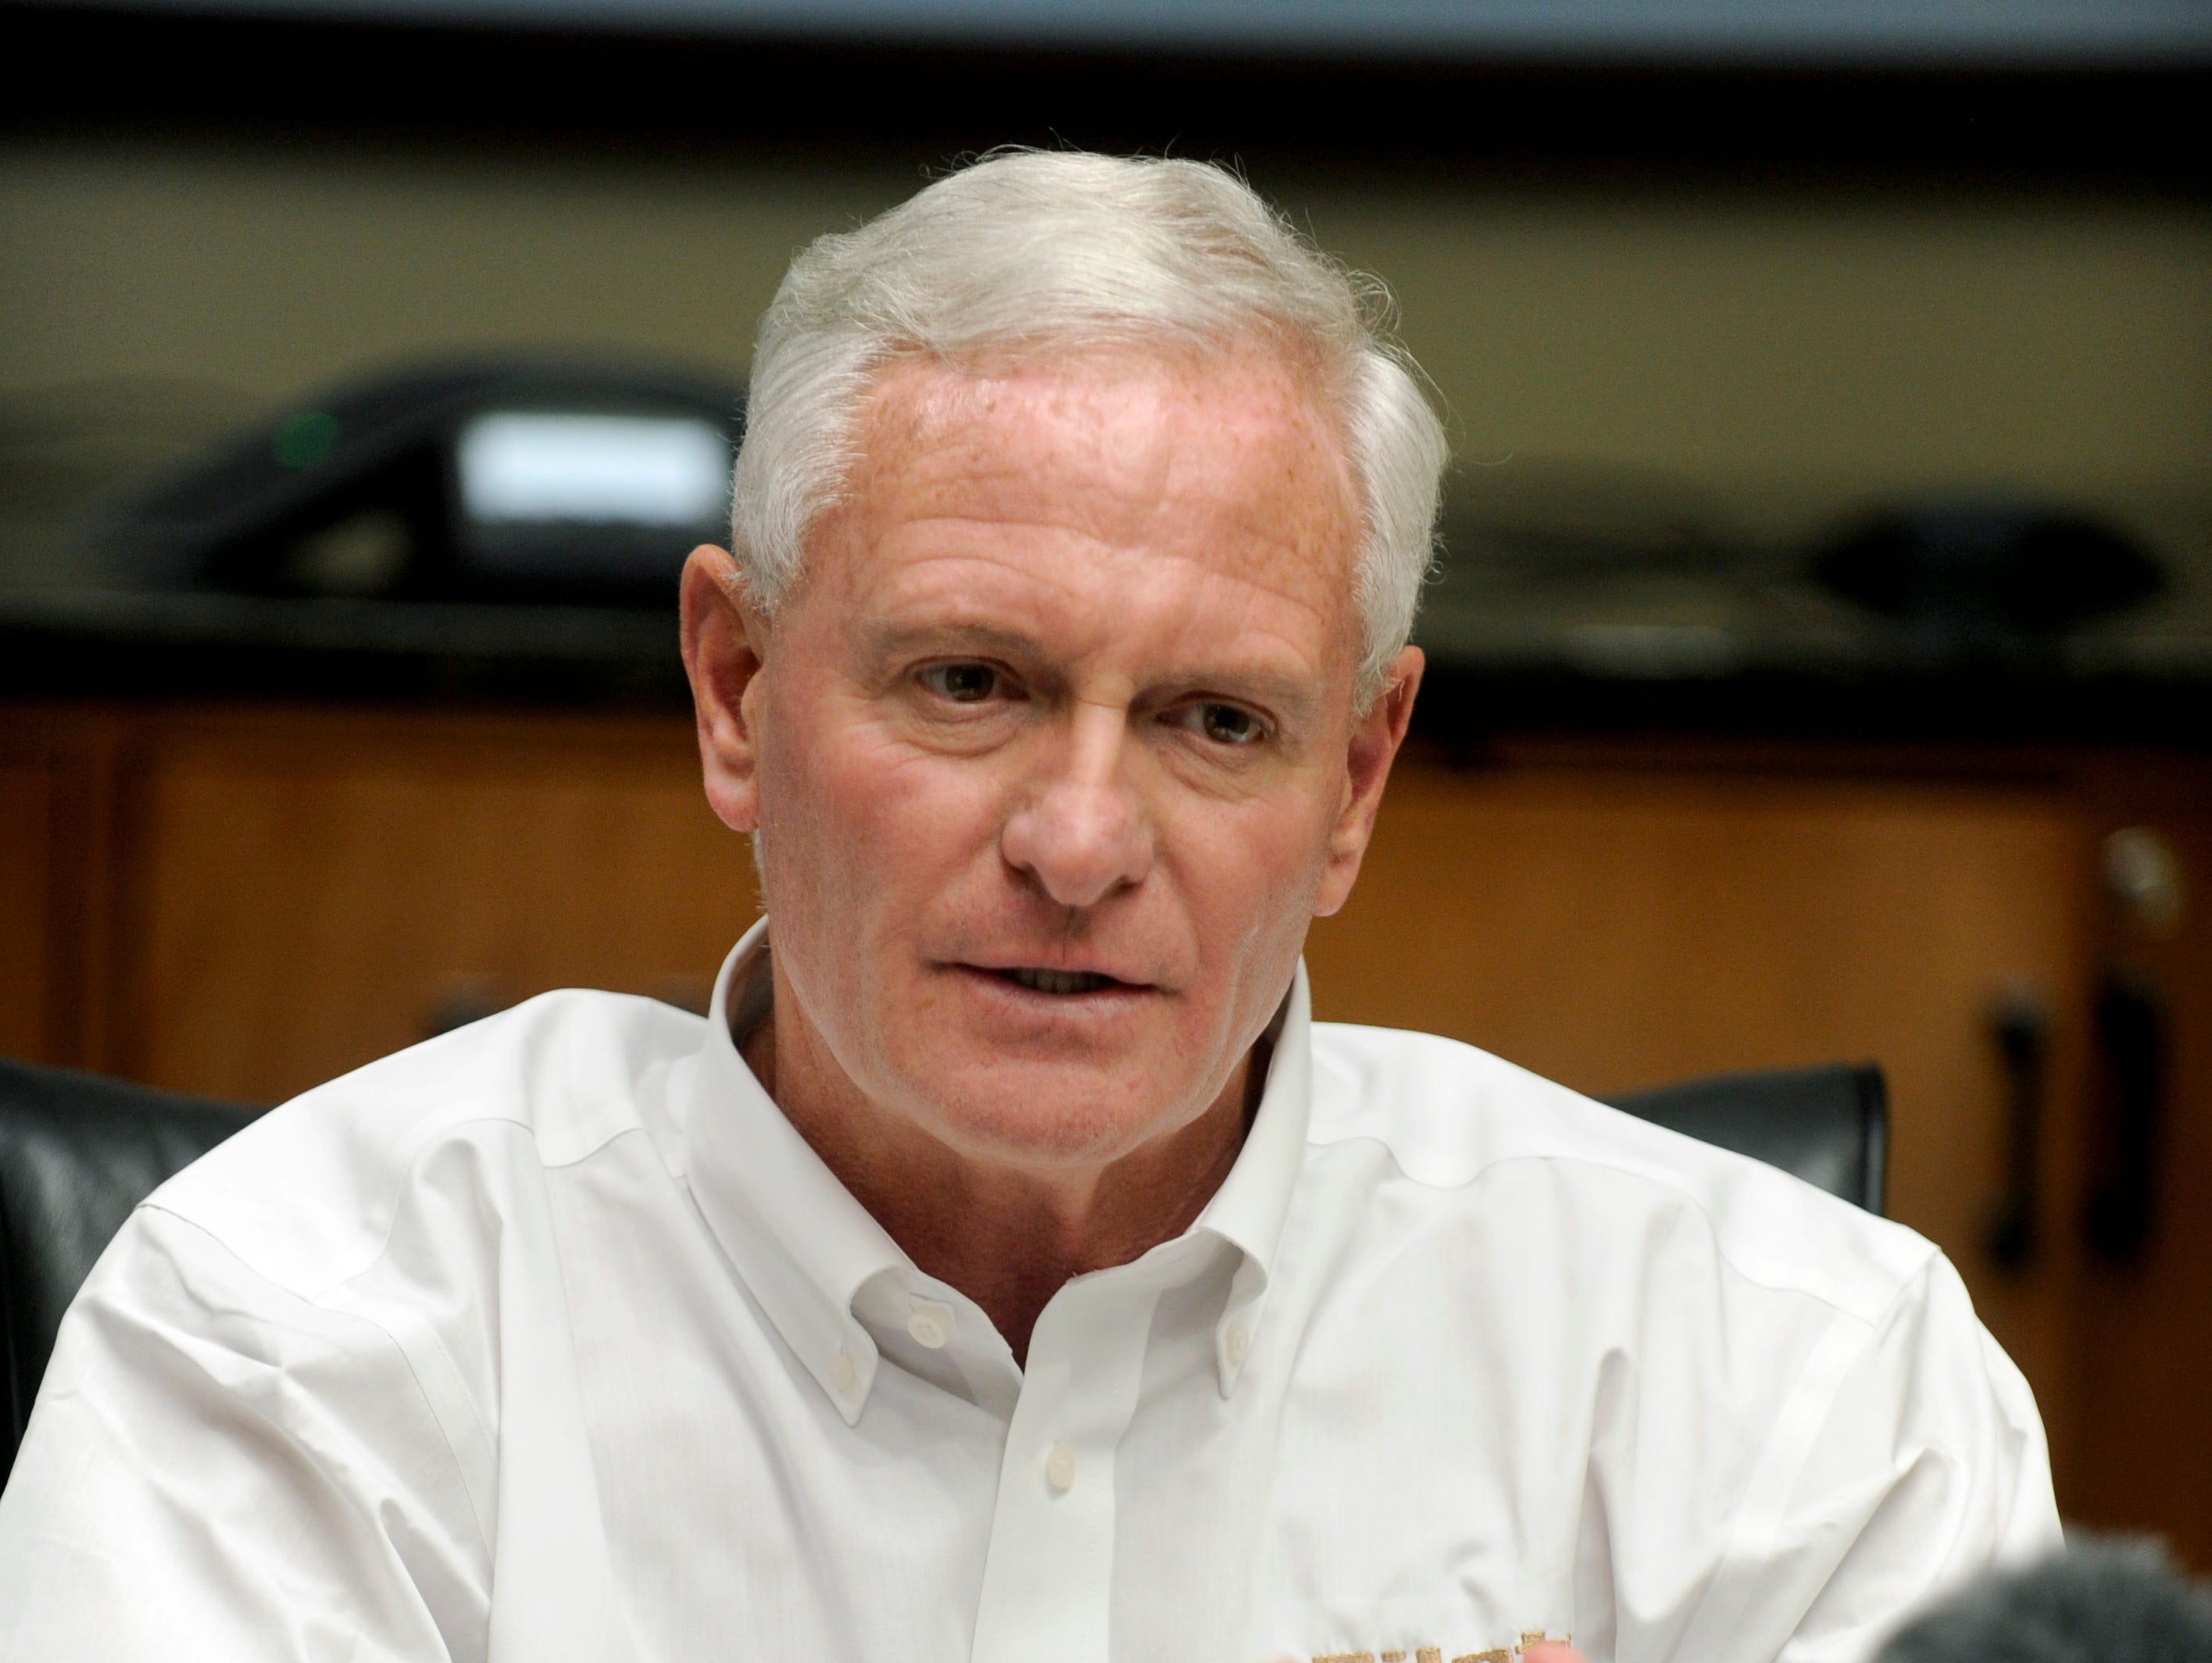 Pilot Flying J CEO Jimmy Haslam during a press conference Monday, Apr. 22, 2013 in the boardroom at their Knoxville headquarters.